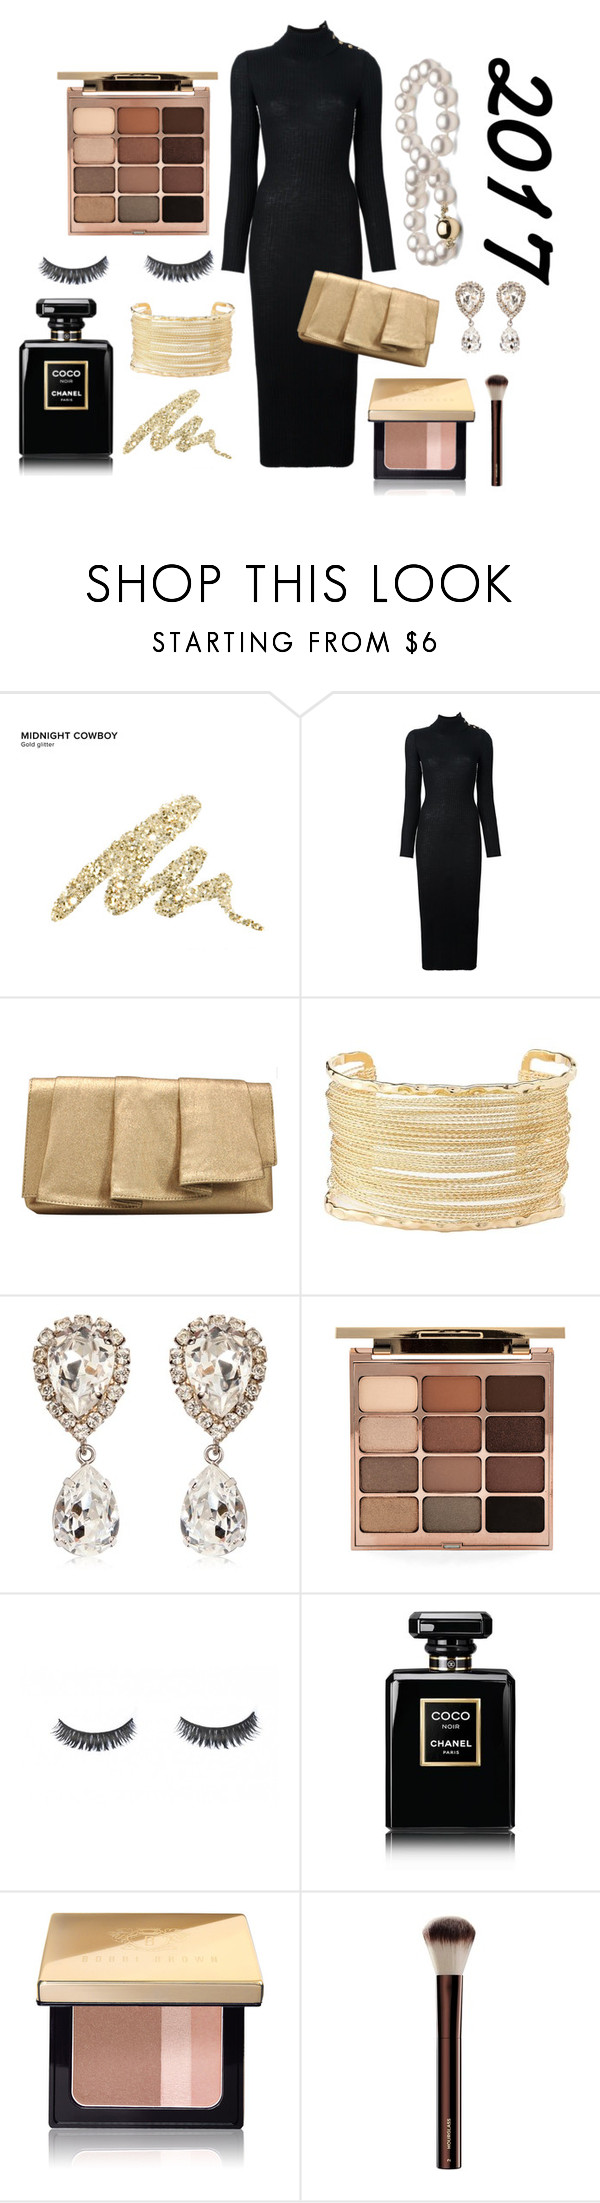 """New Year #2"" by so-fantastic ❤ liked on Polyvore featuring Urban Decay, Balmain, La Regale, Charlotte Russe, Dolce&Gabbana, Stila, Chanel and Bobbi Brown Cosmetics"